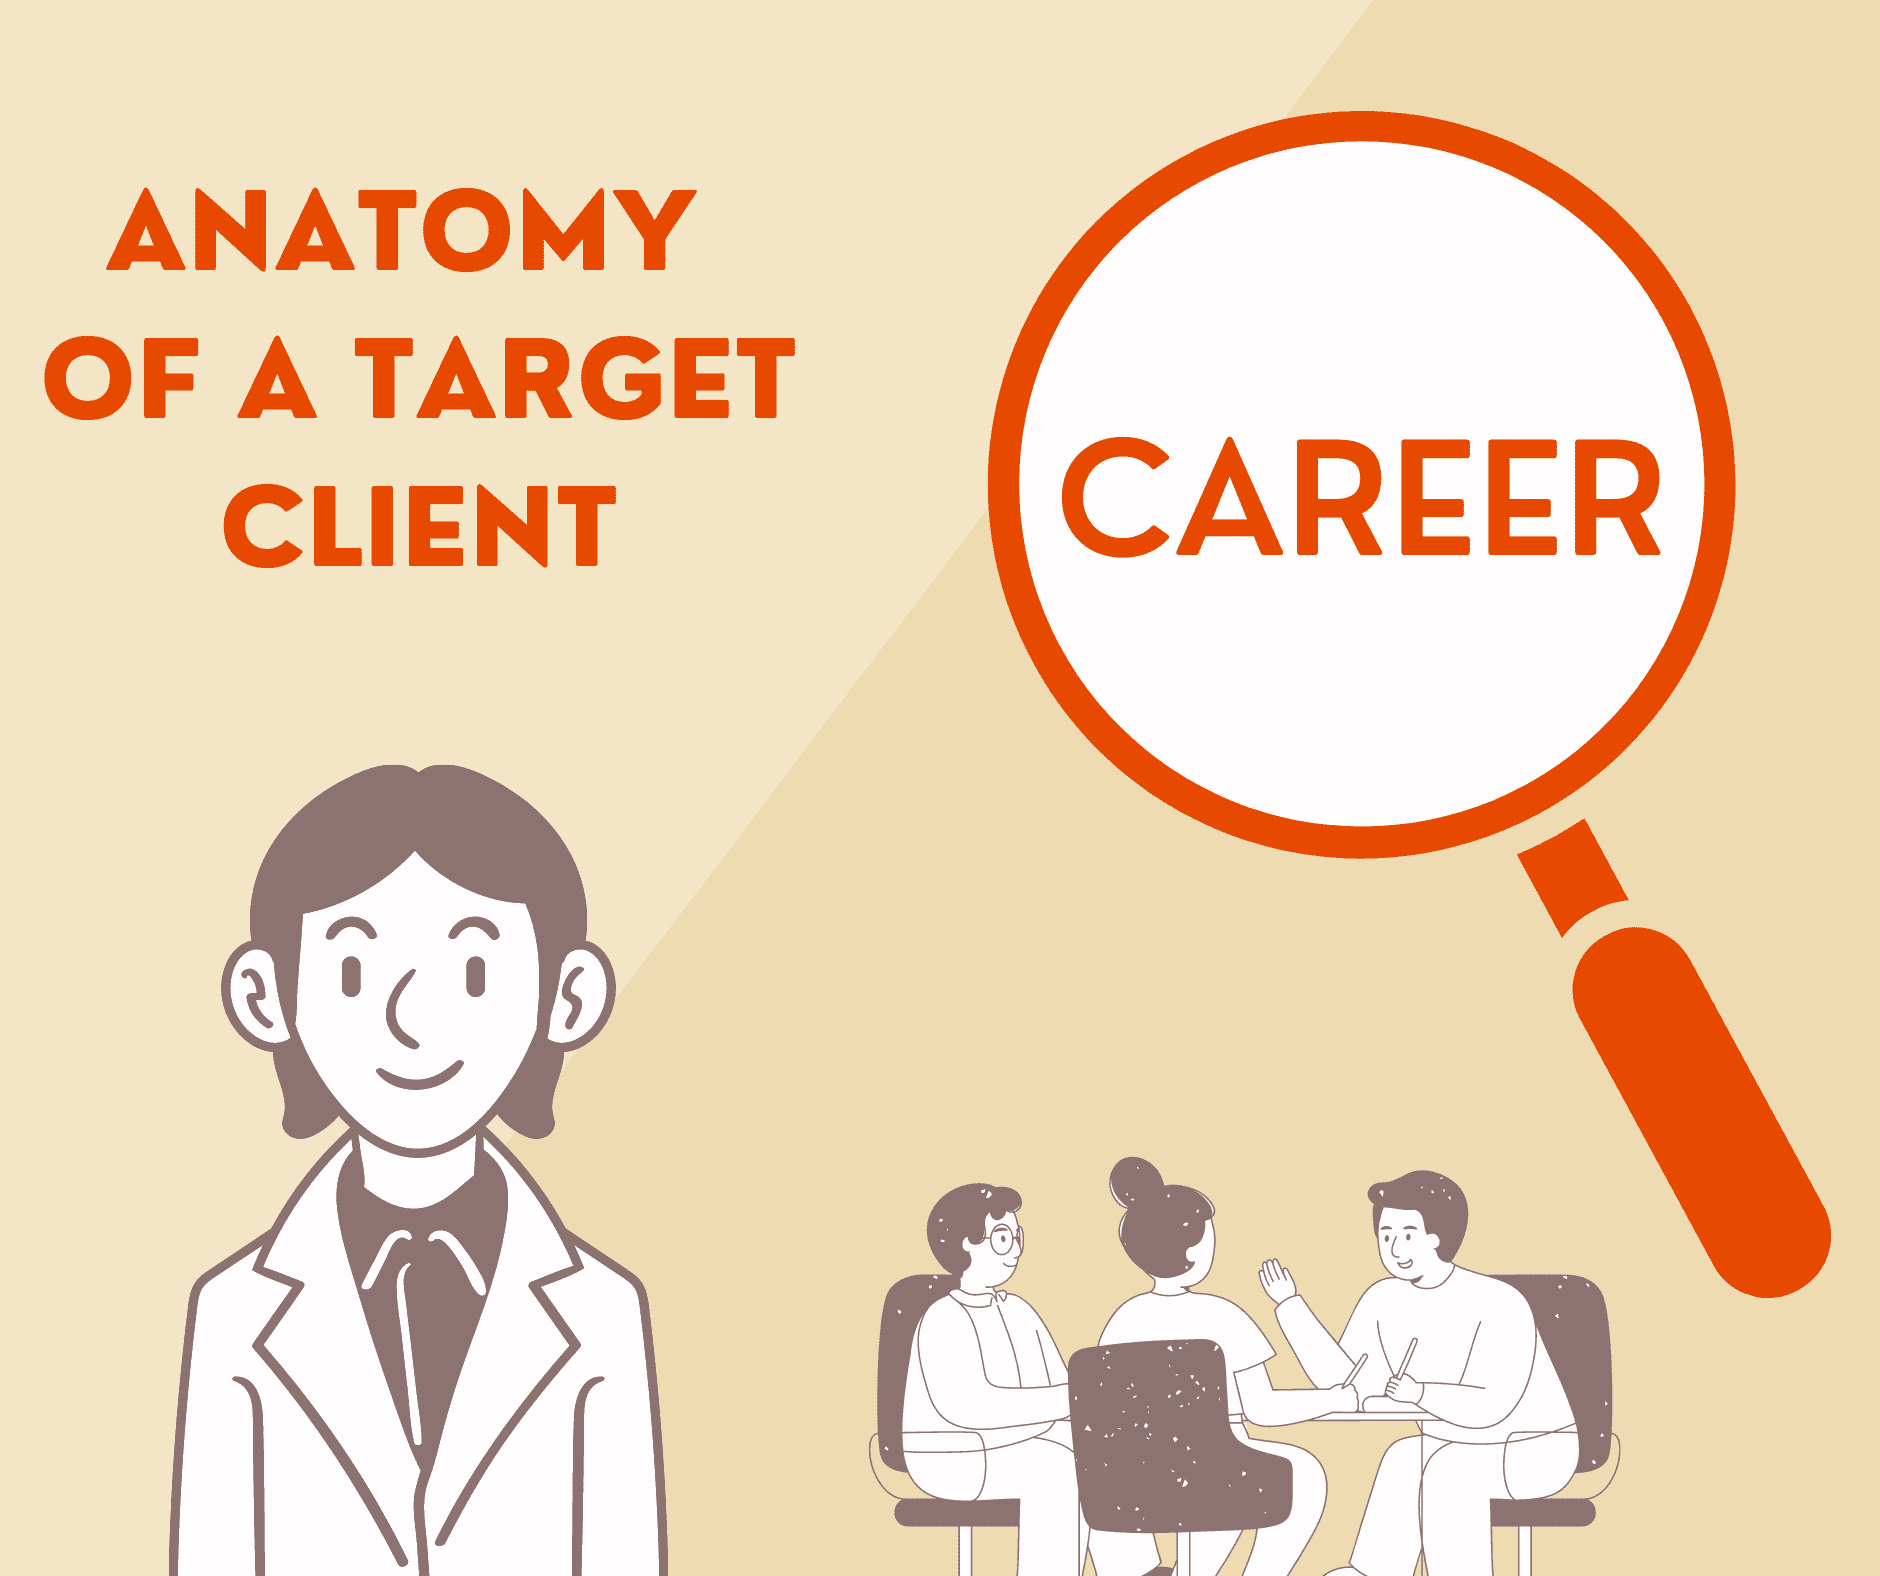 Career - Anatomy of a Target Client